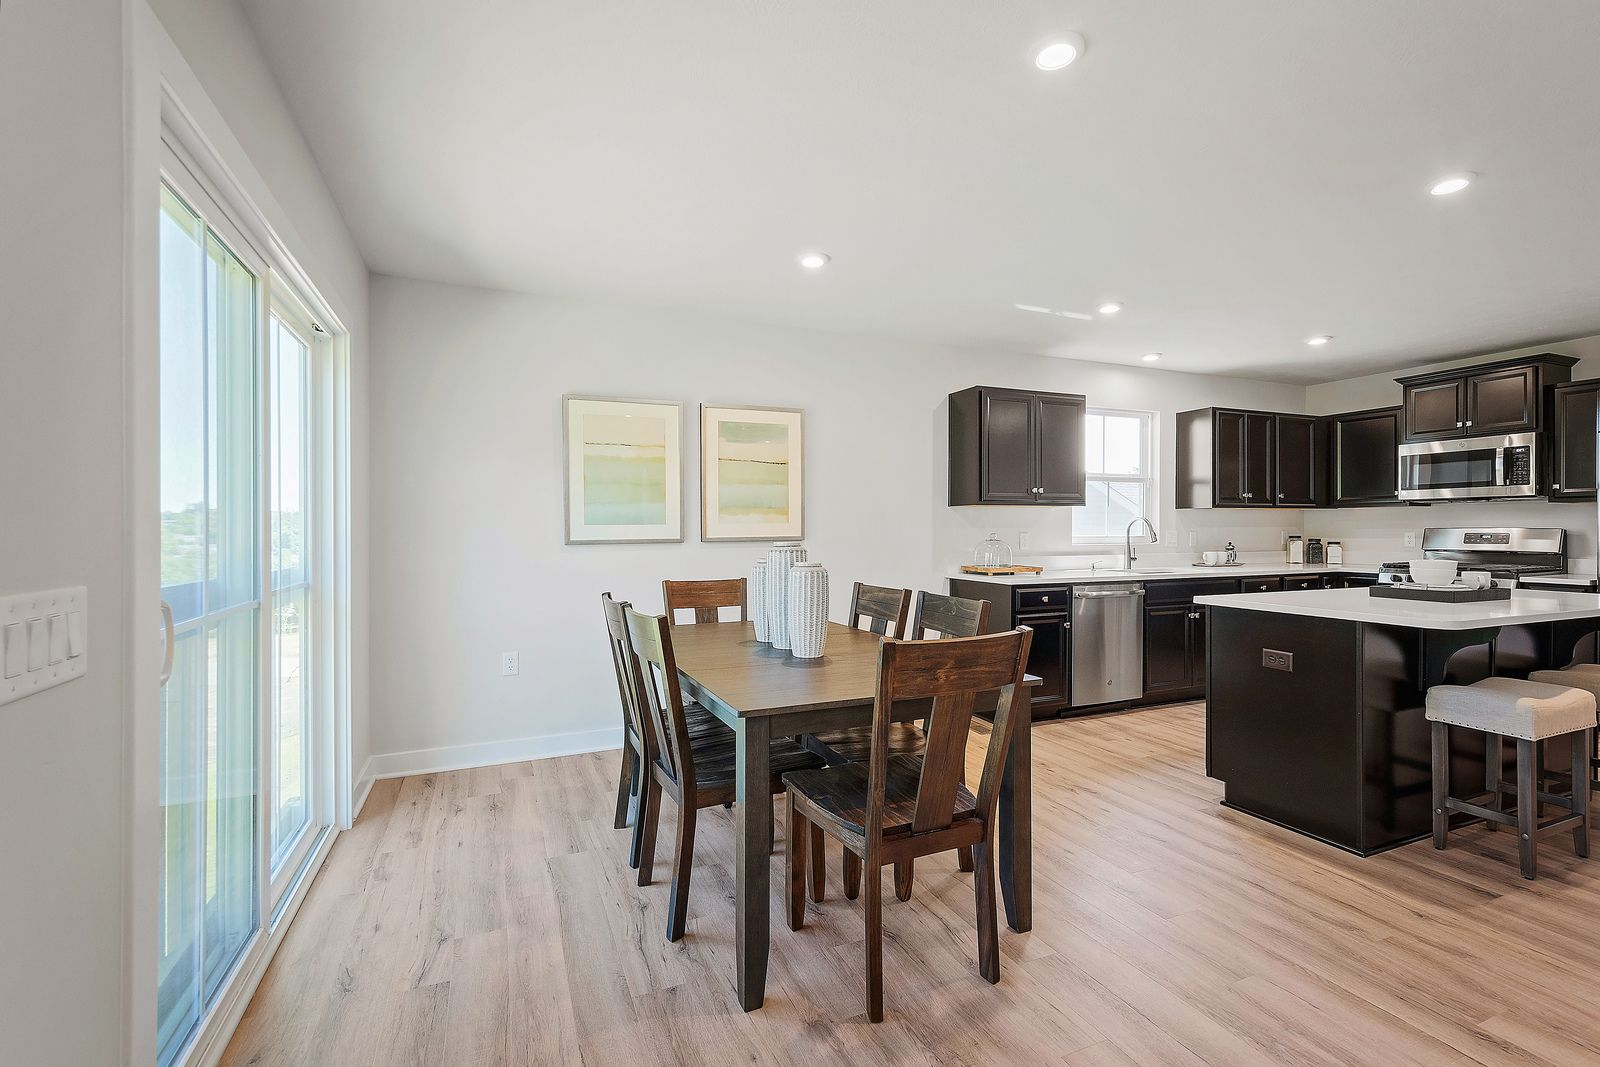 Kitchen featured in the Dominica Spring By Ryan Homes in Columbus, OH